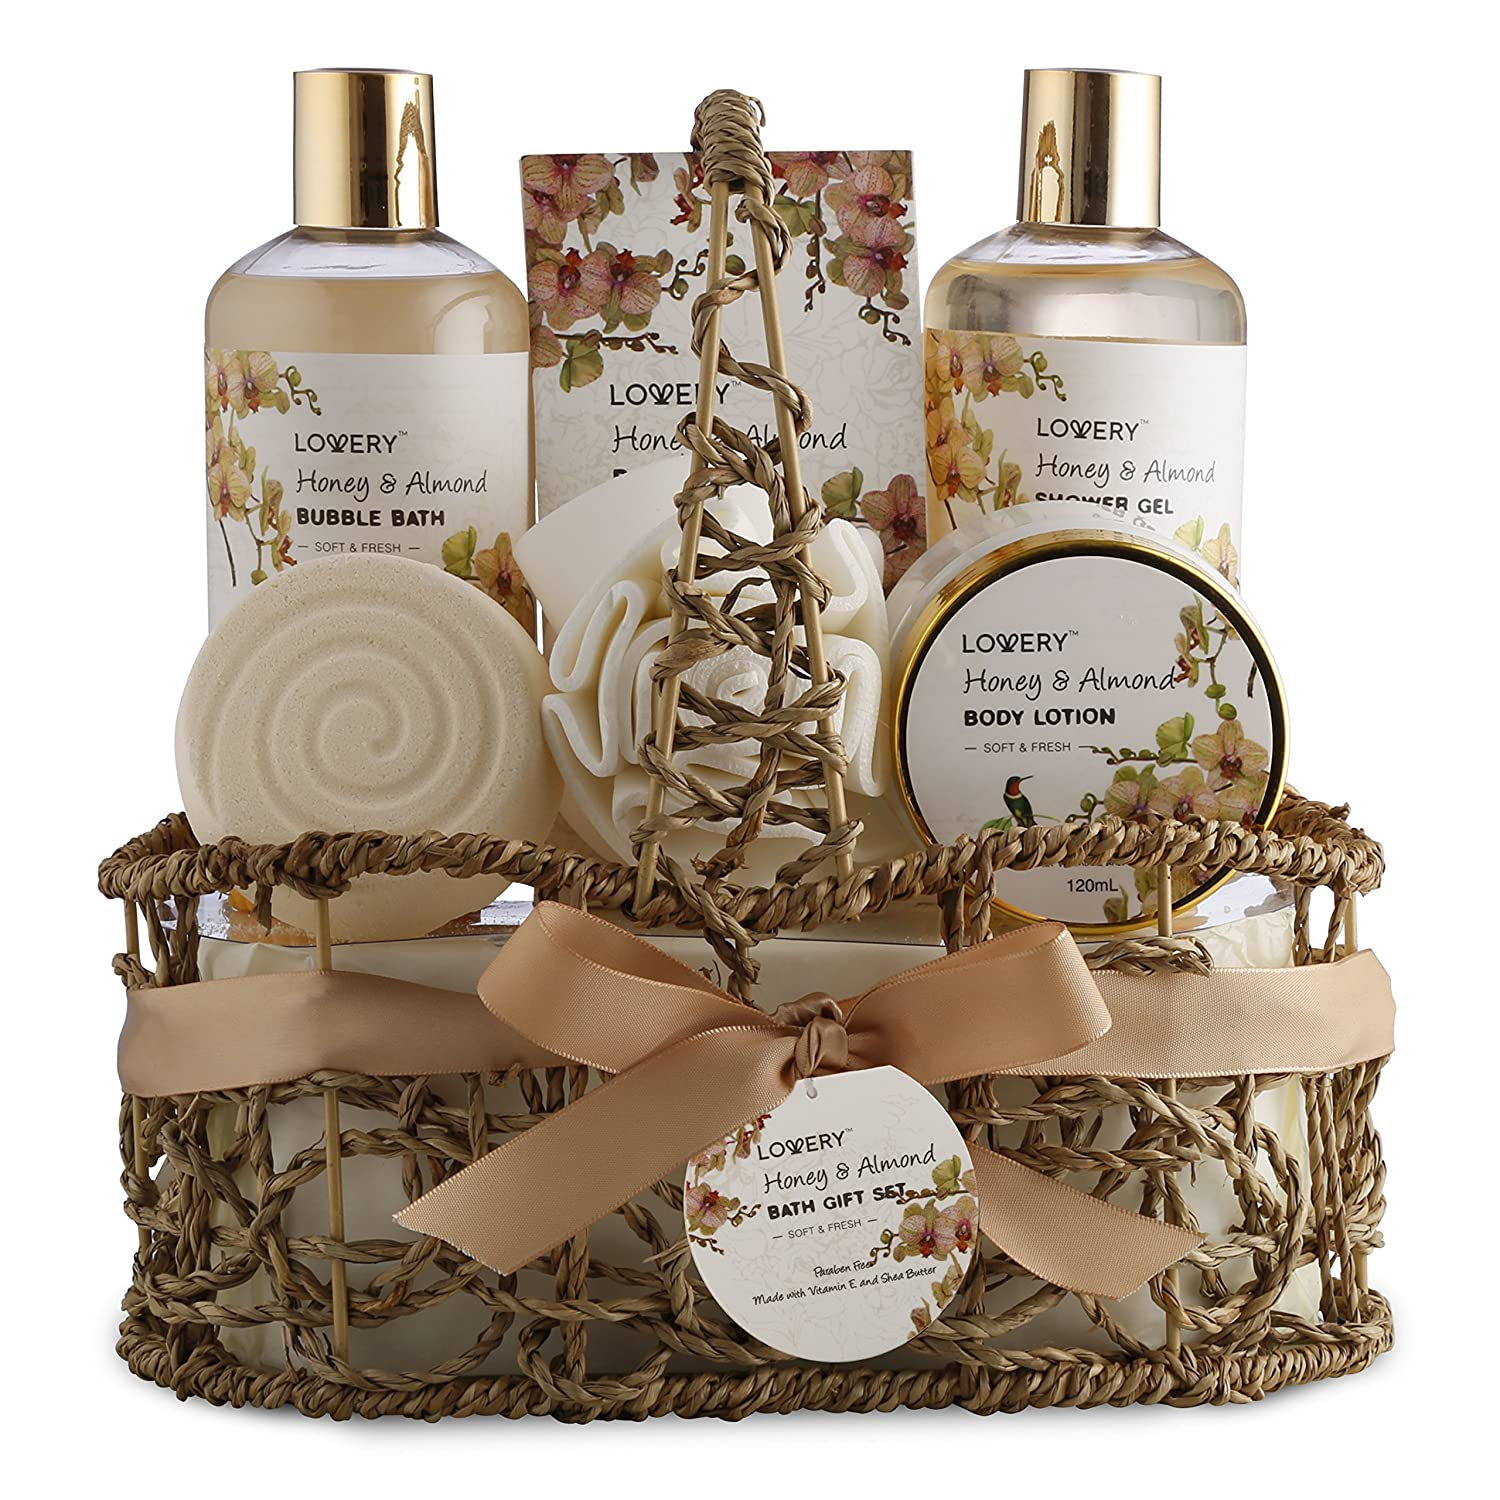 Almond Basket New Home Spa Gift Basket - Honey & Almond Scent - Luxurious 7 Piece Bath & Body Set For Women & Men-Contains Shower Gel, Bubble Bath, Body Lotion, Bath Salt, Bath Bomb, Bath Puff & Handmade Weaved Basket